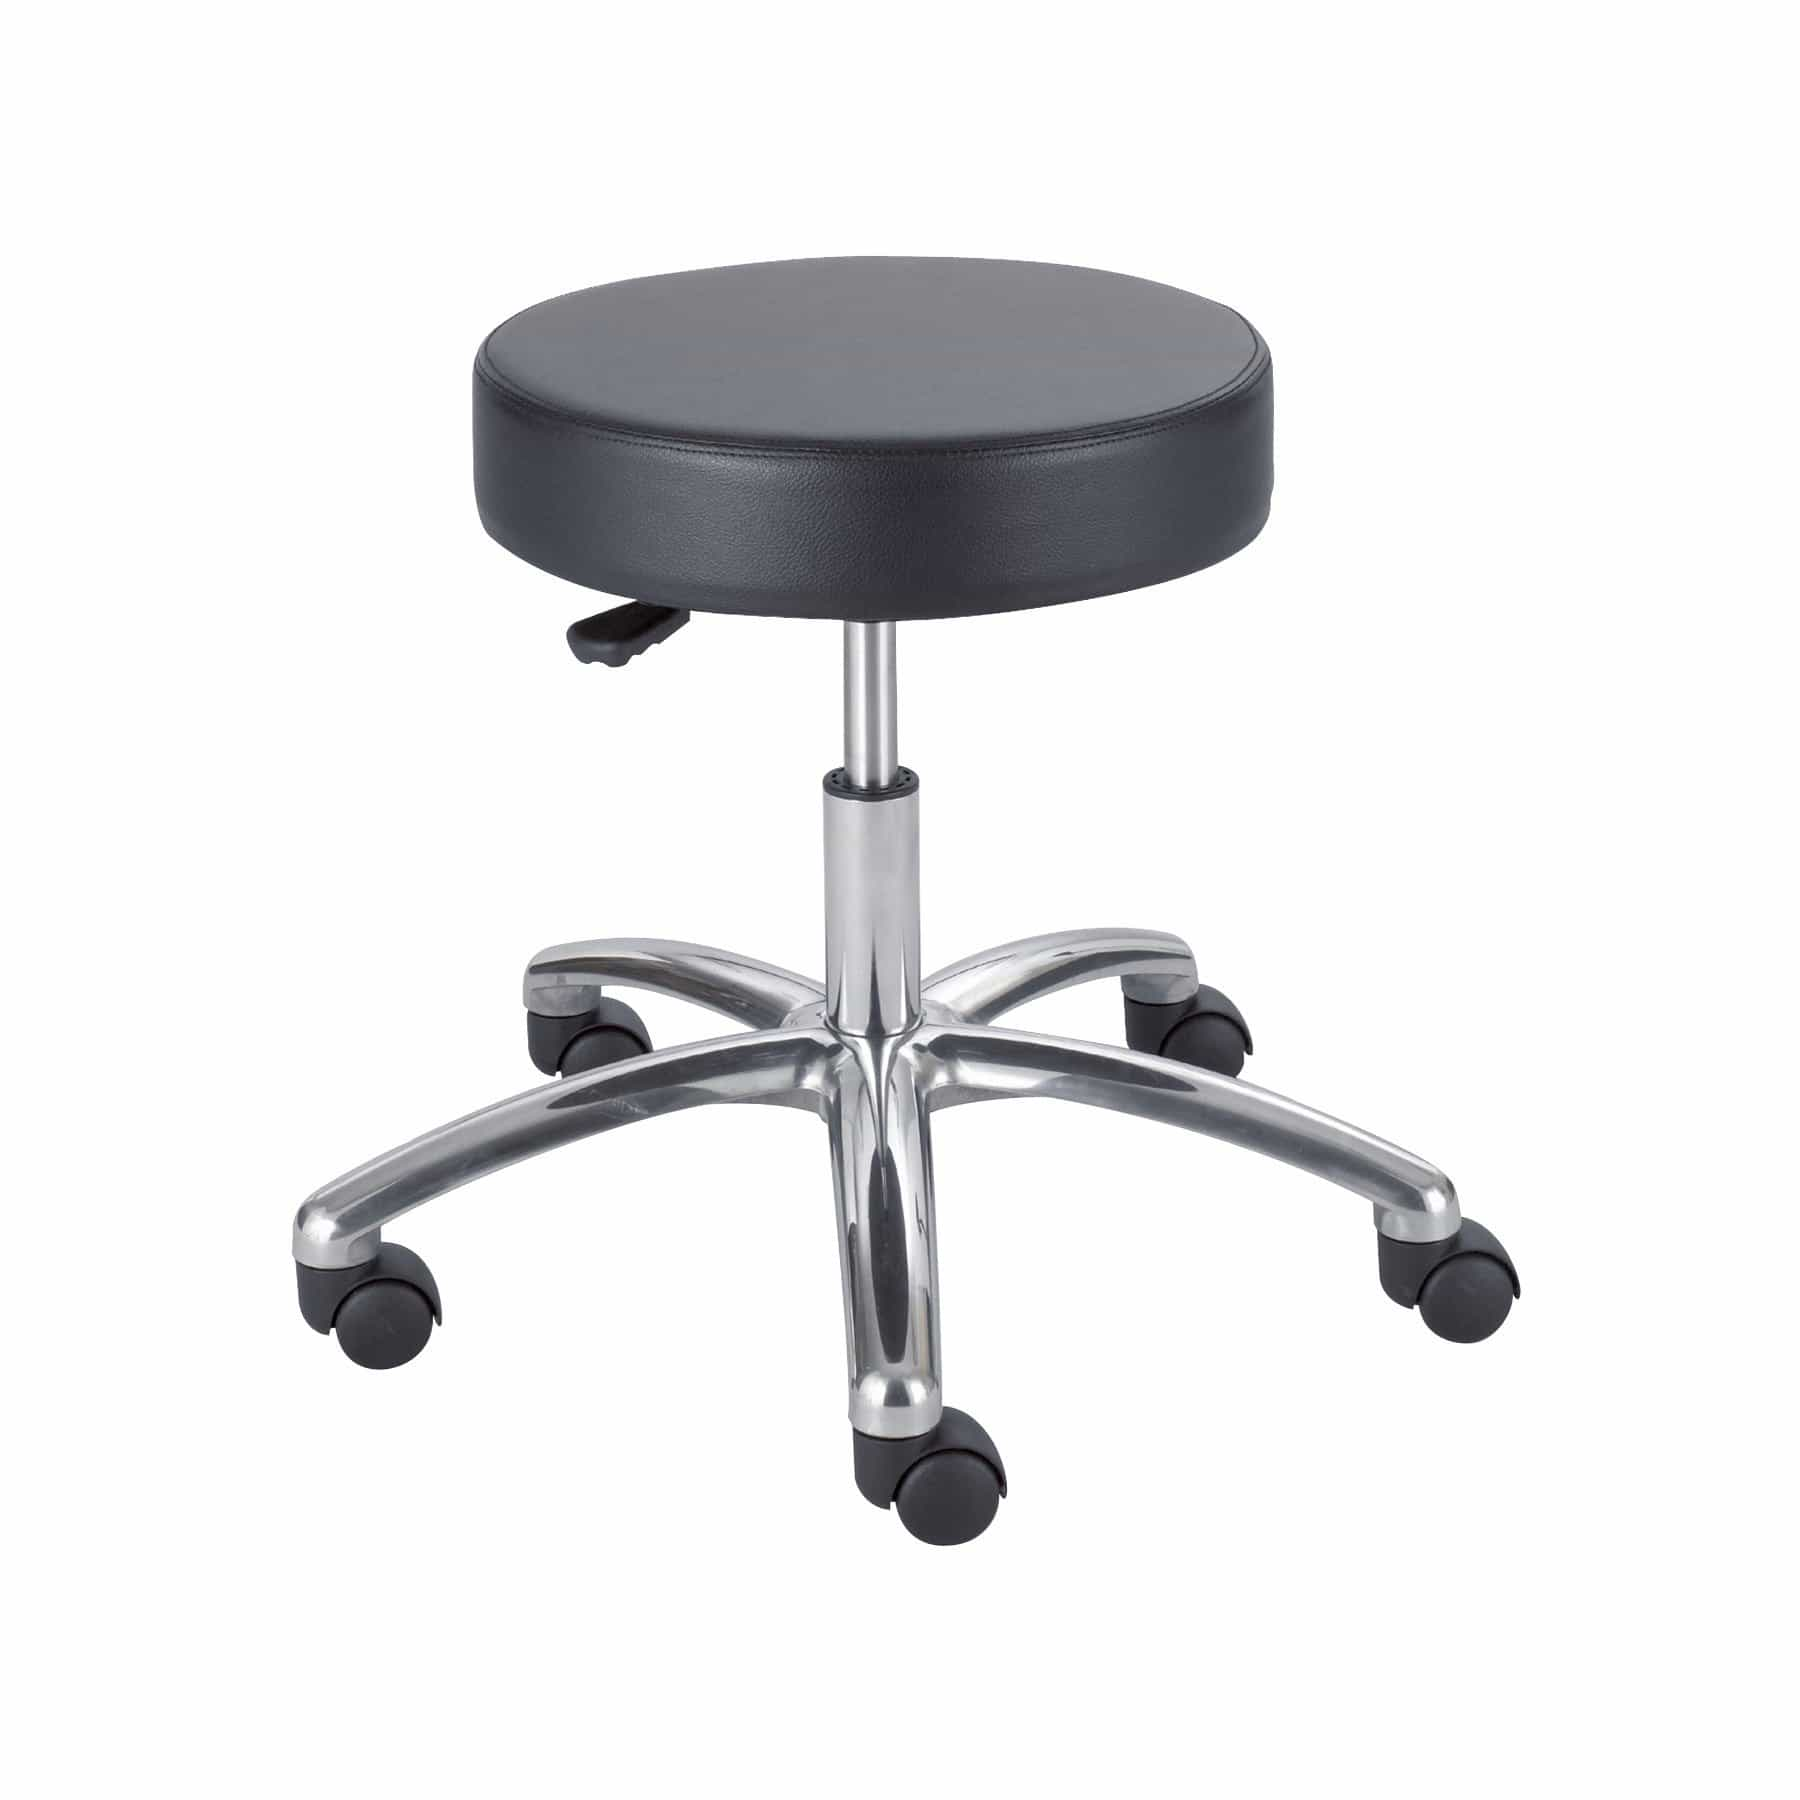 bedinhome - 3431BL Comfortable 250 lbs Weight Capacity Seat Height Adjustment Swivel Black Rolling Lab Stool With Pneumatic lift - Safco - Rolling Lab Stool